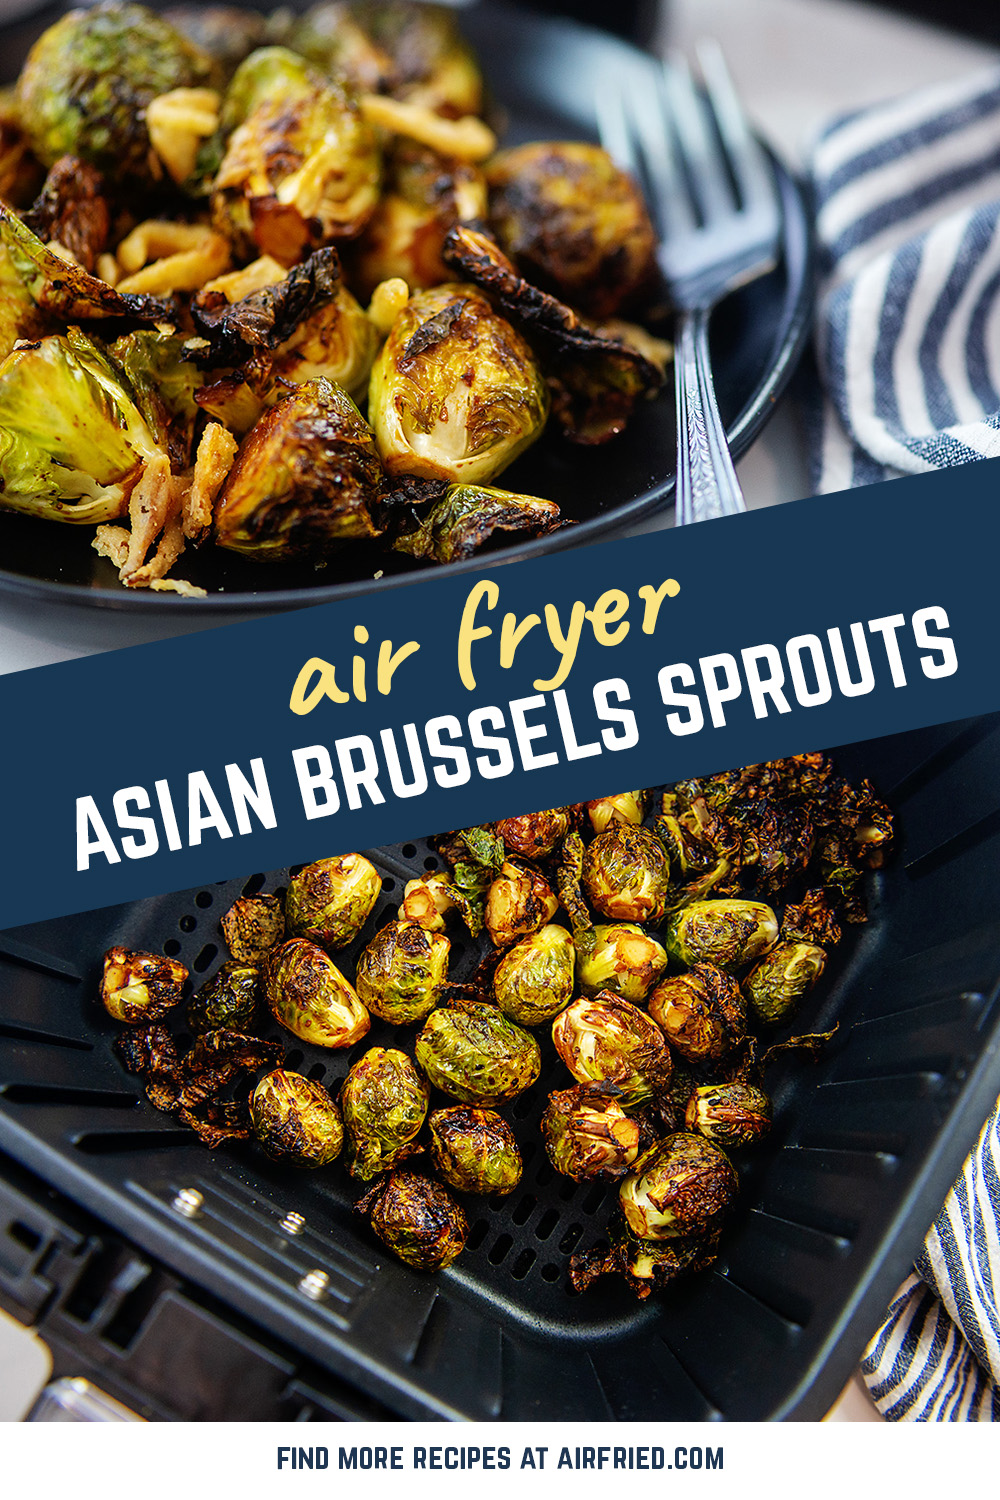 You need to get this recipe for crispy brussels sprouts seasoned with honey, garlic and other Asian inspired flavors!